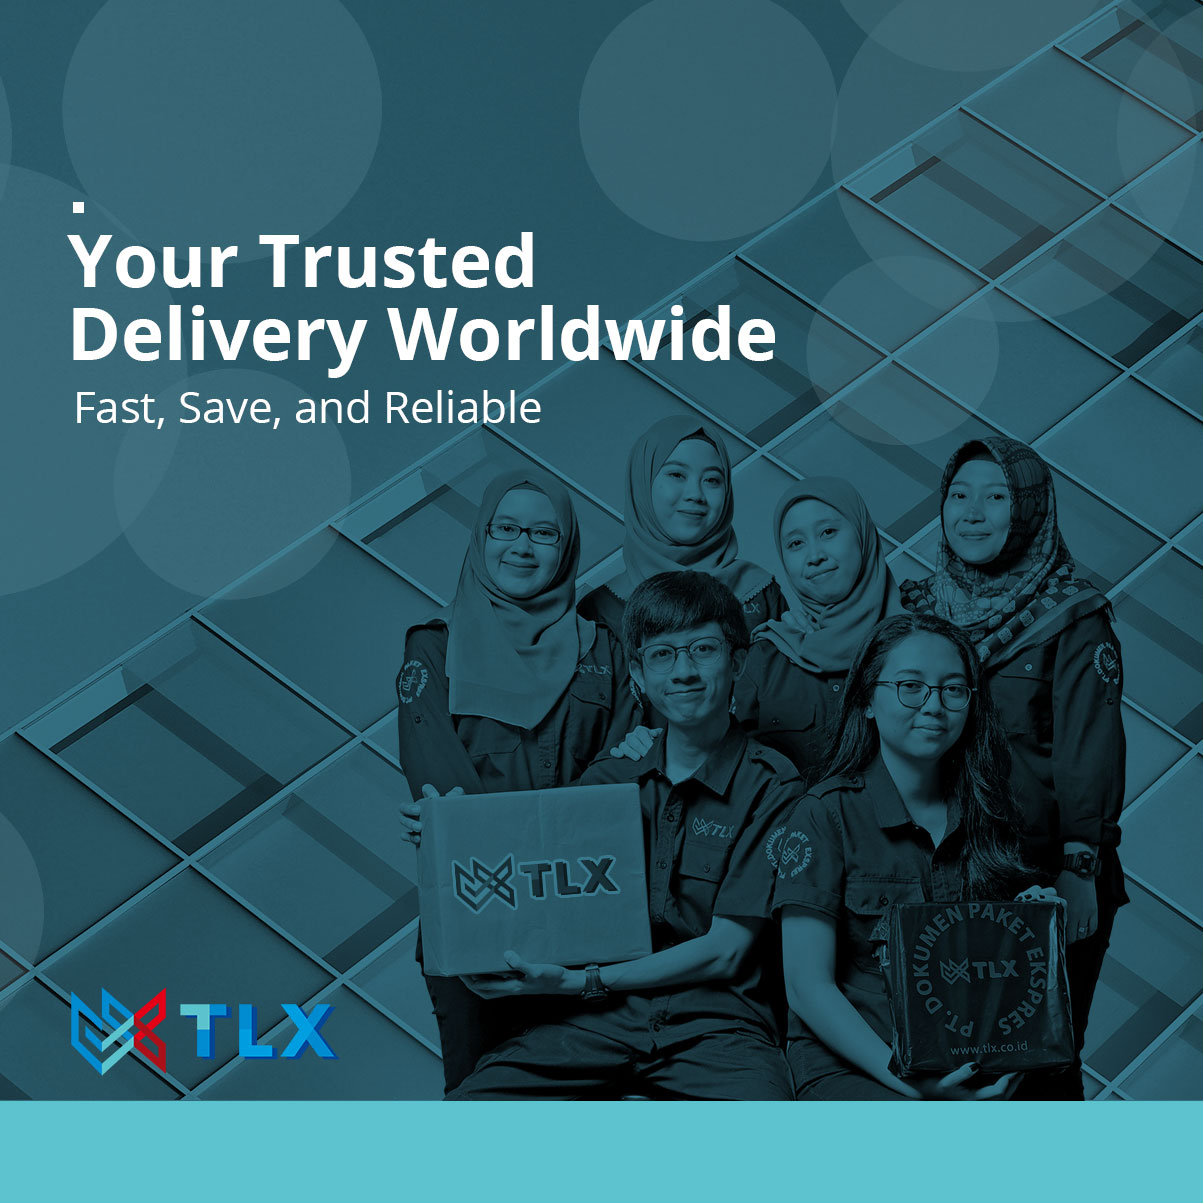 Your Trusted Delivery Worldwide